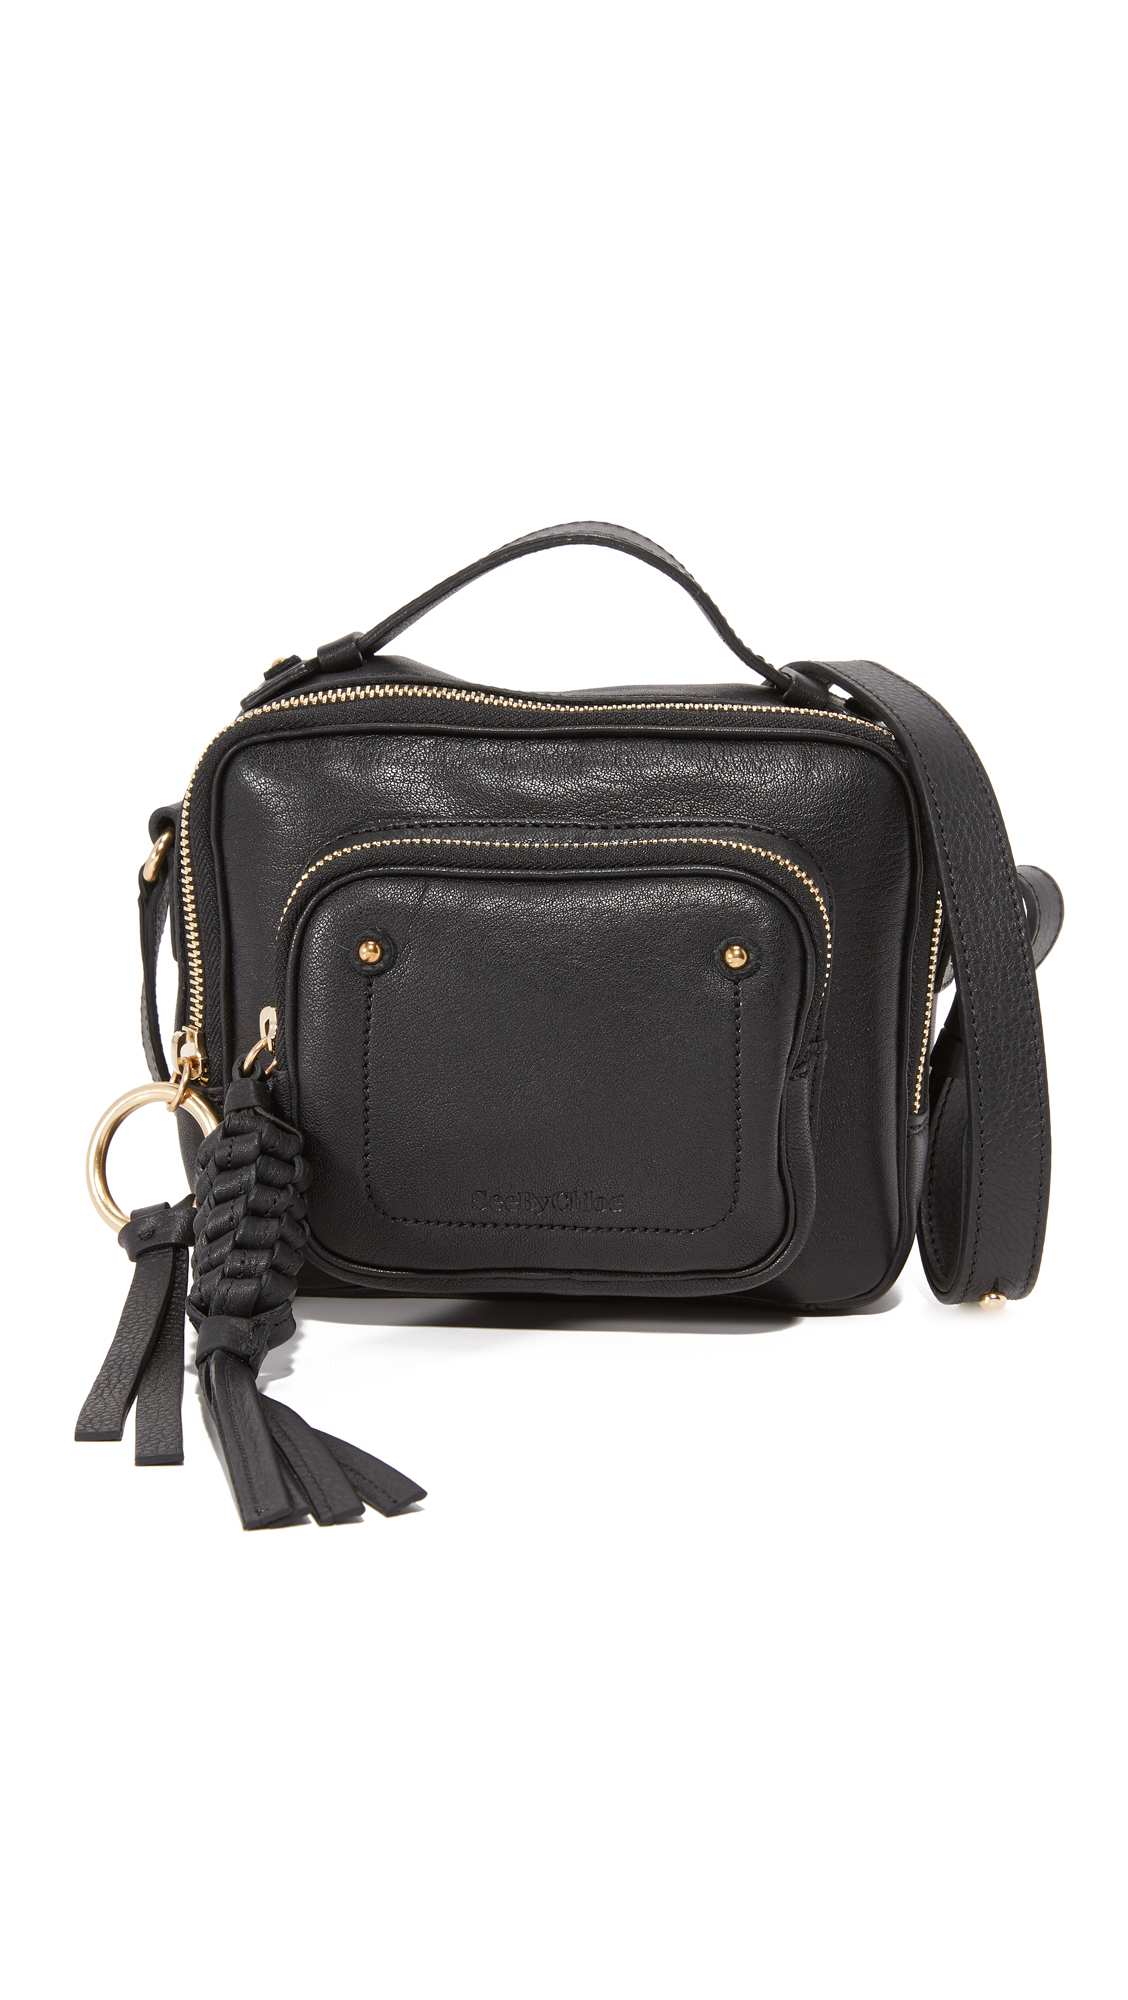 02751b91a1f8 See by Chloe Patti Camera Bag